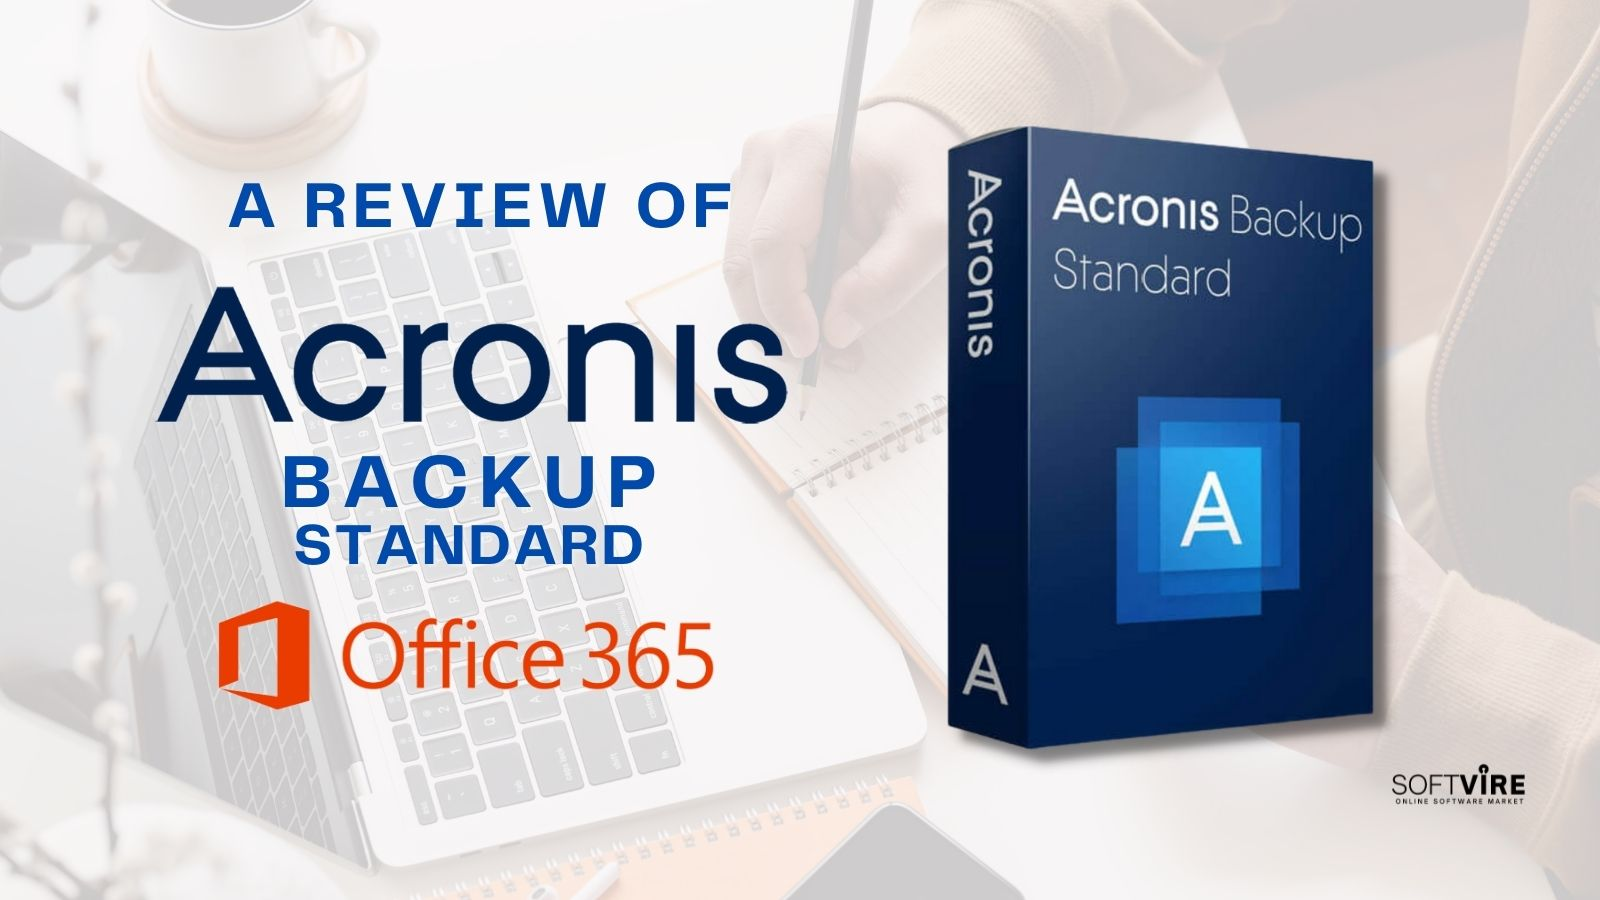 A Review of Acronis Backup Standard Office 365 - Twitter - Softvire Global Market